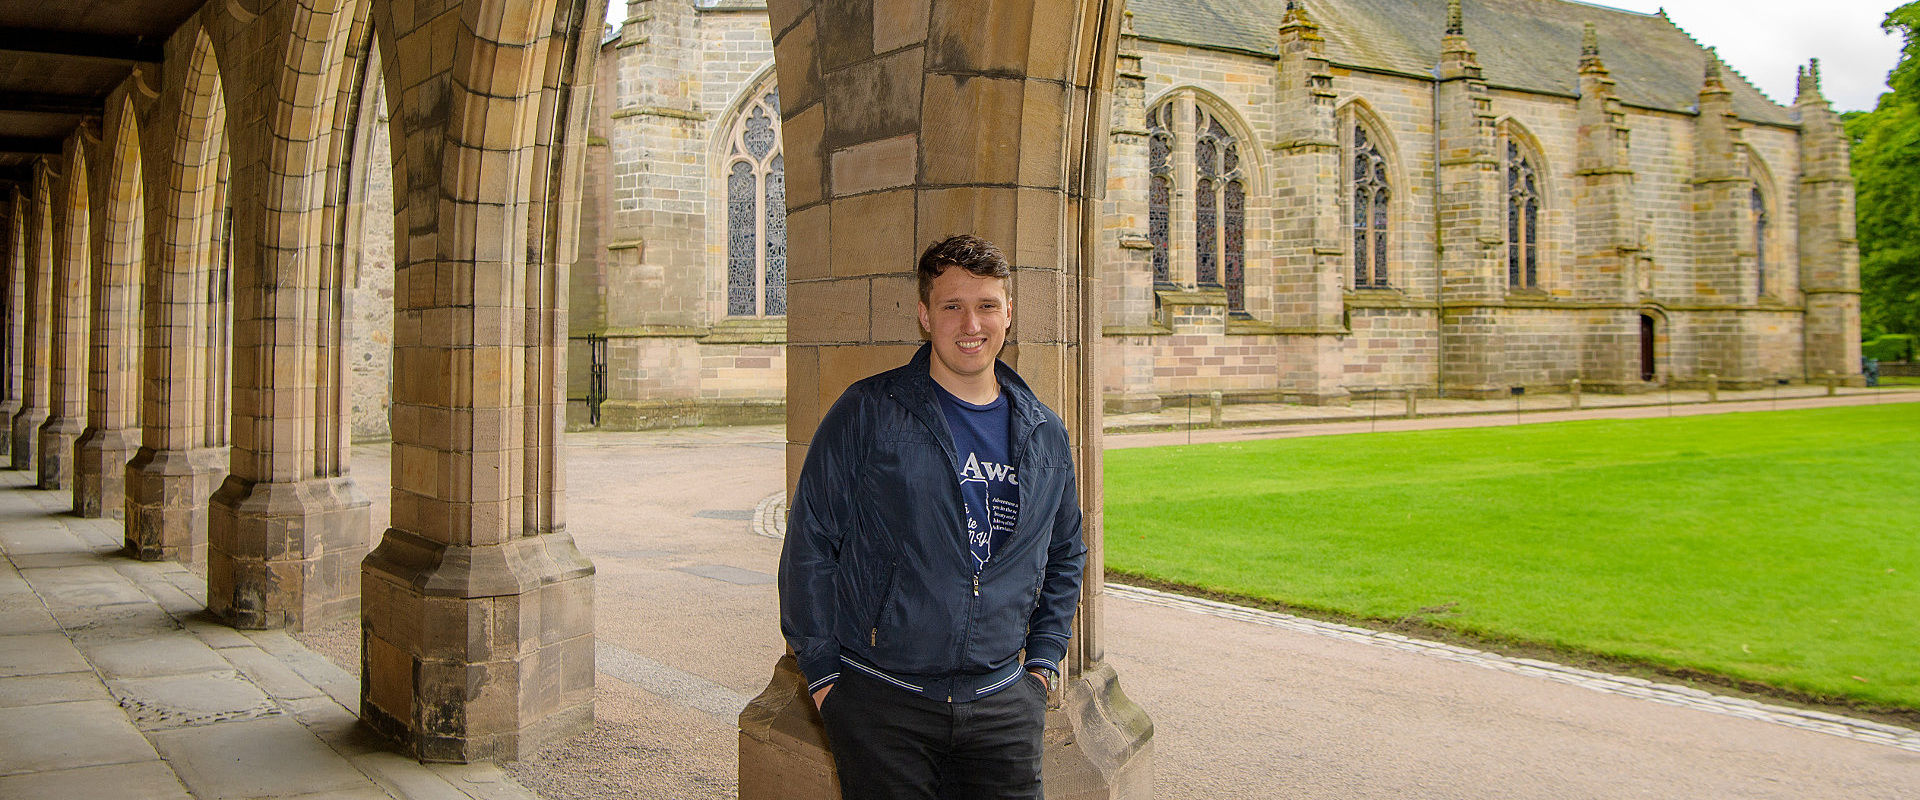 Mikael on campus at the University of Aberdeen